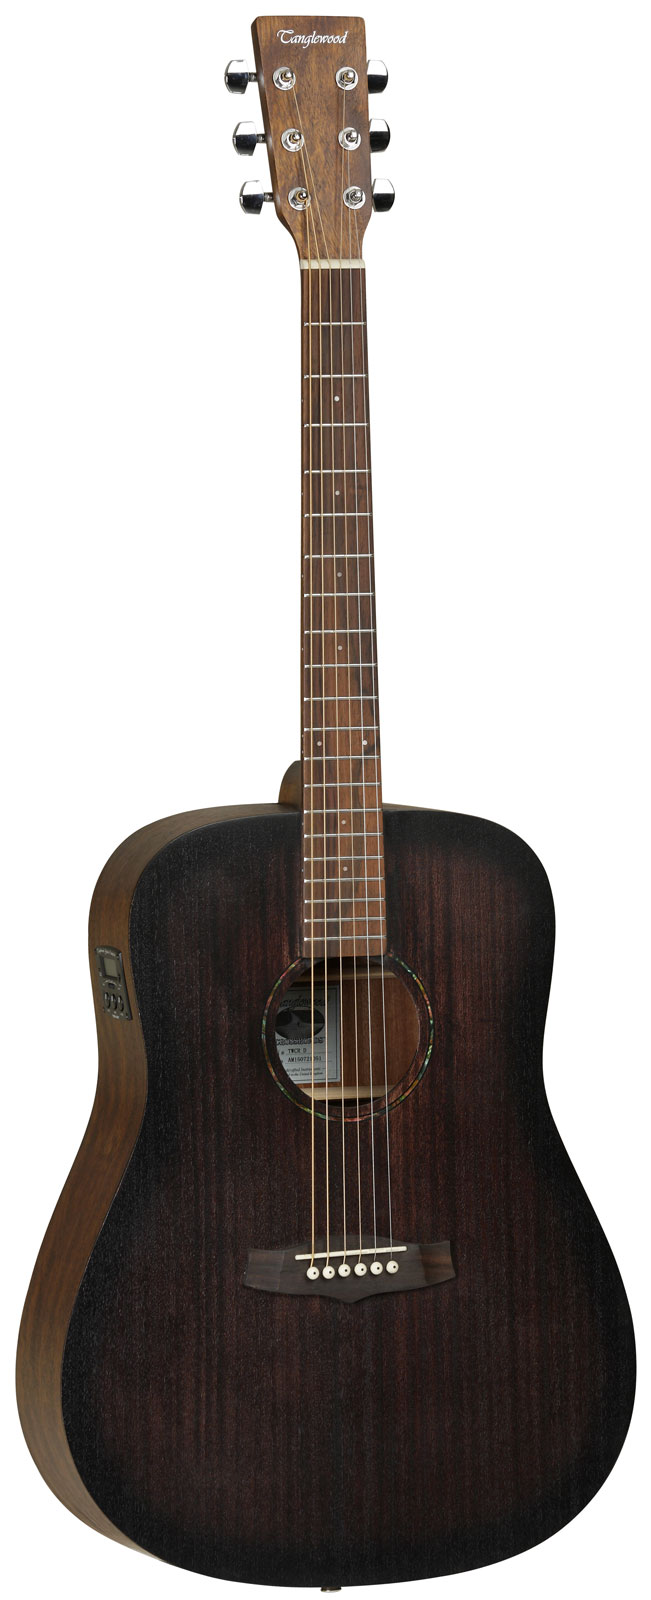 Tanglewood Crossroads Dreadnought Vintage Satin